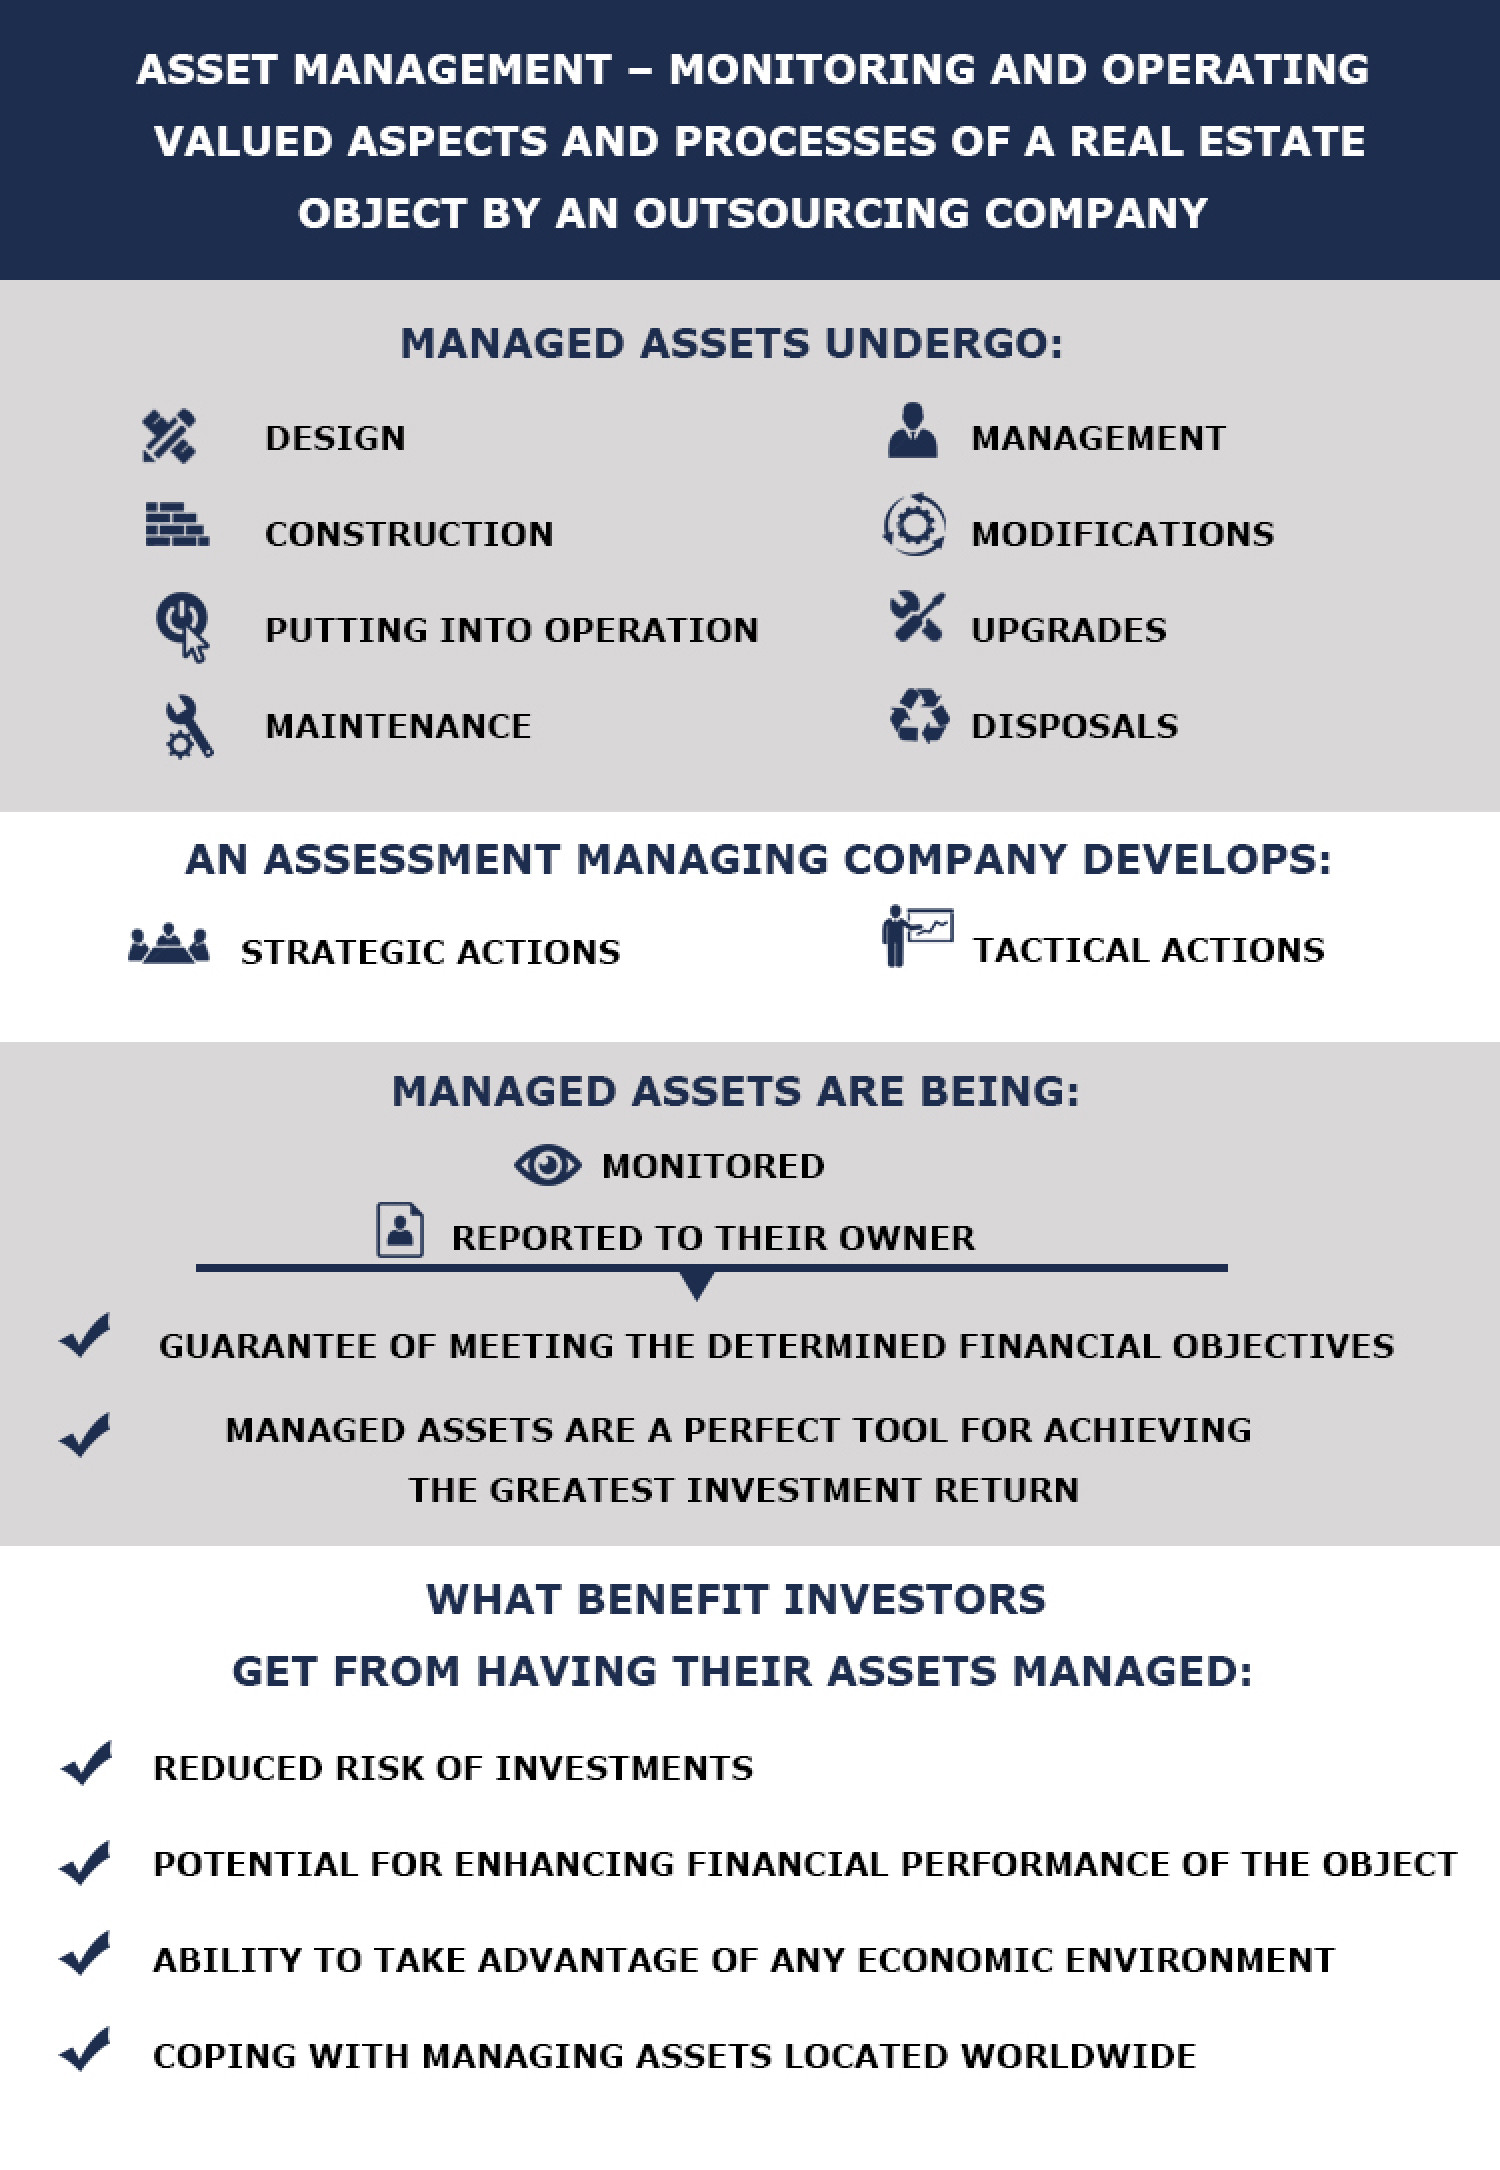 Asset management – monitoring and operating Infographic